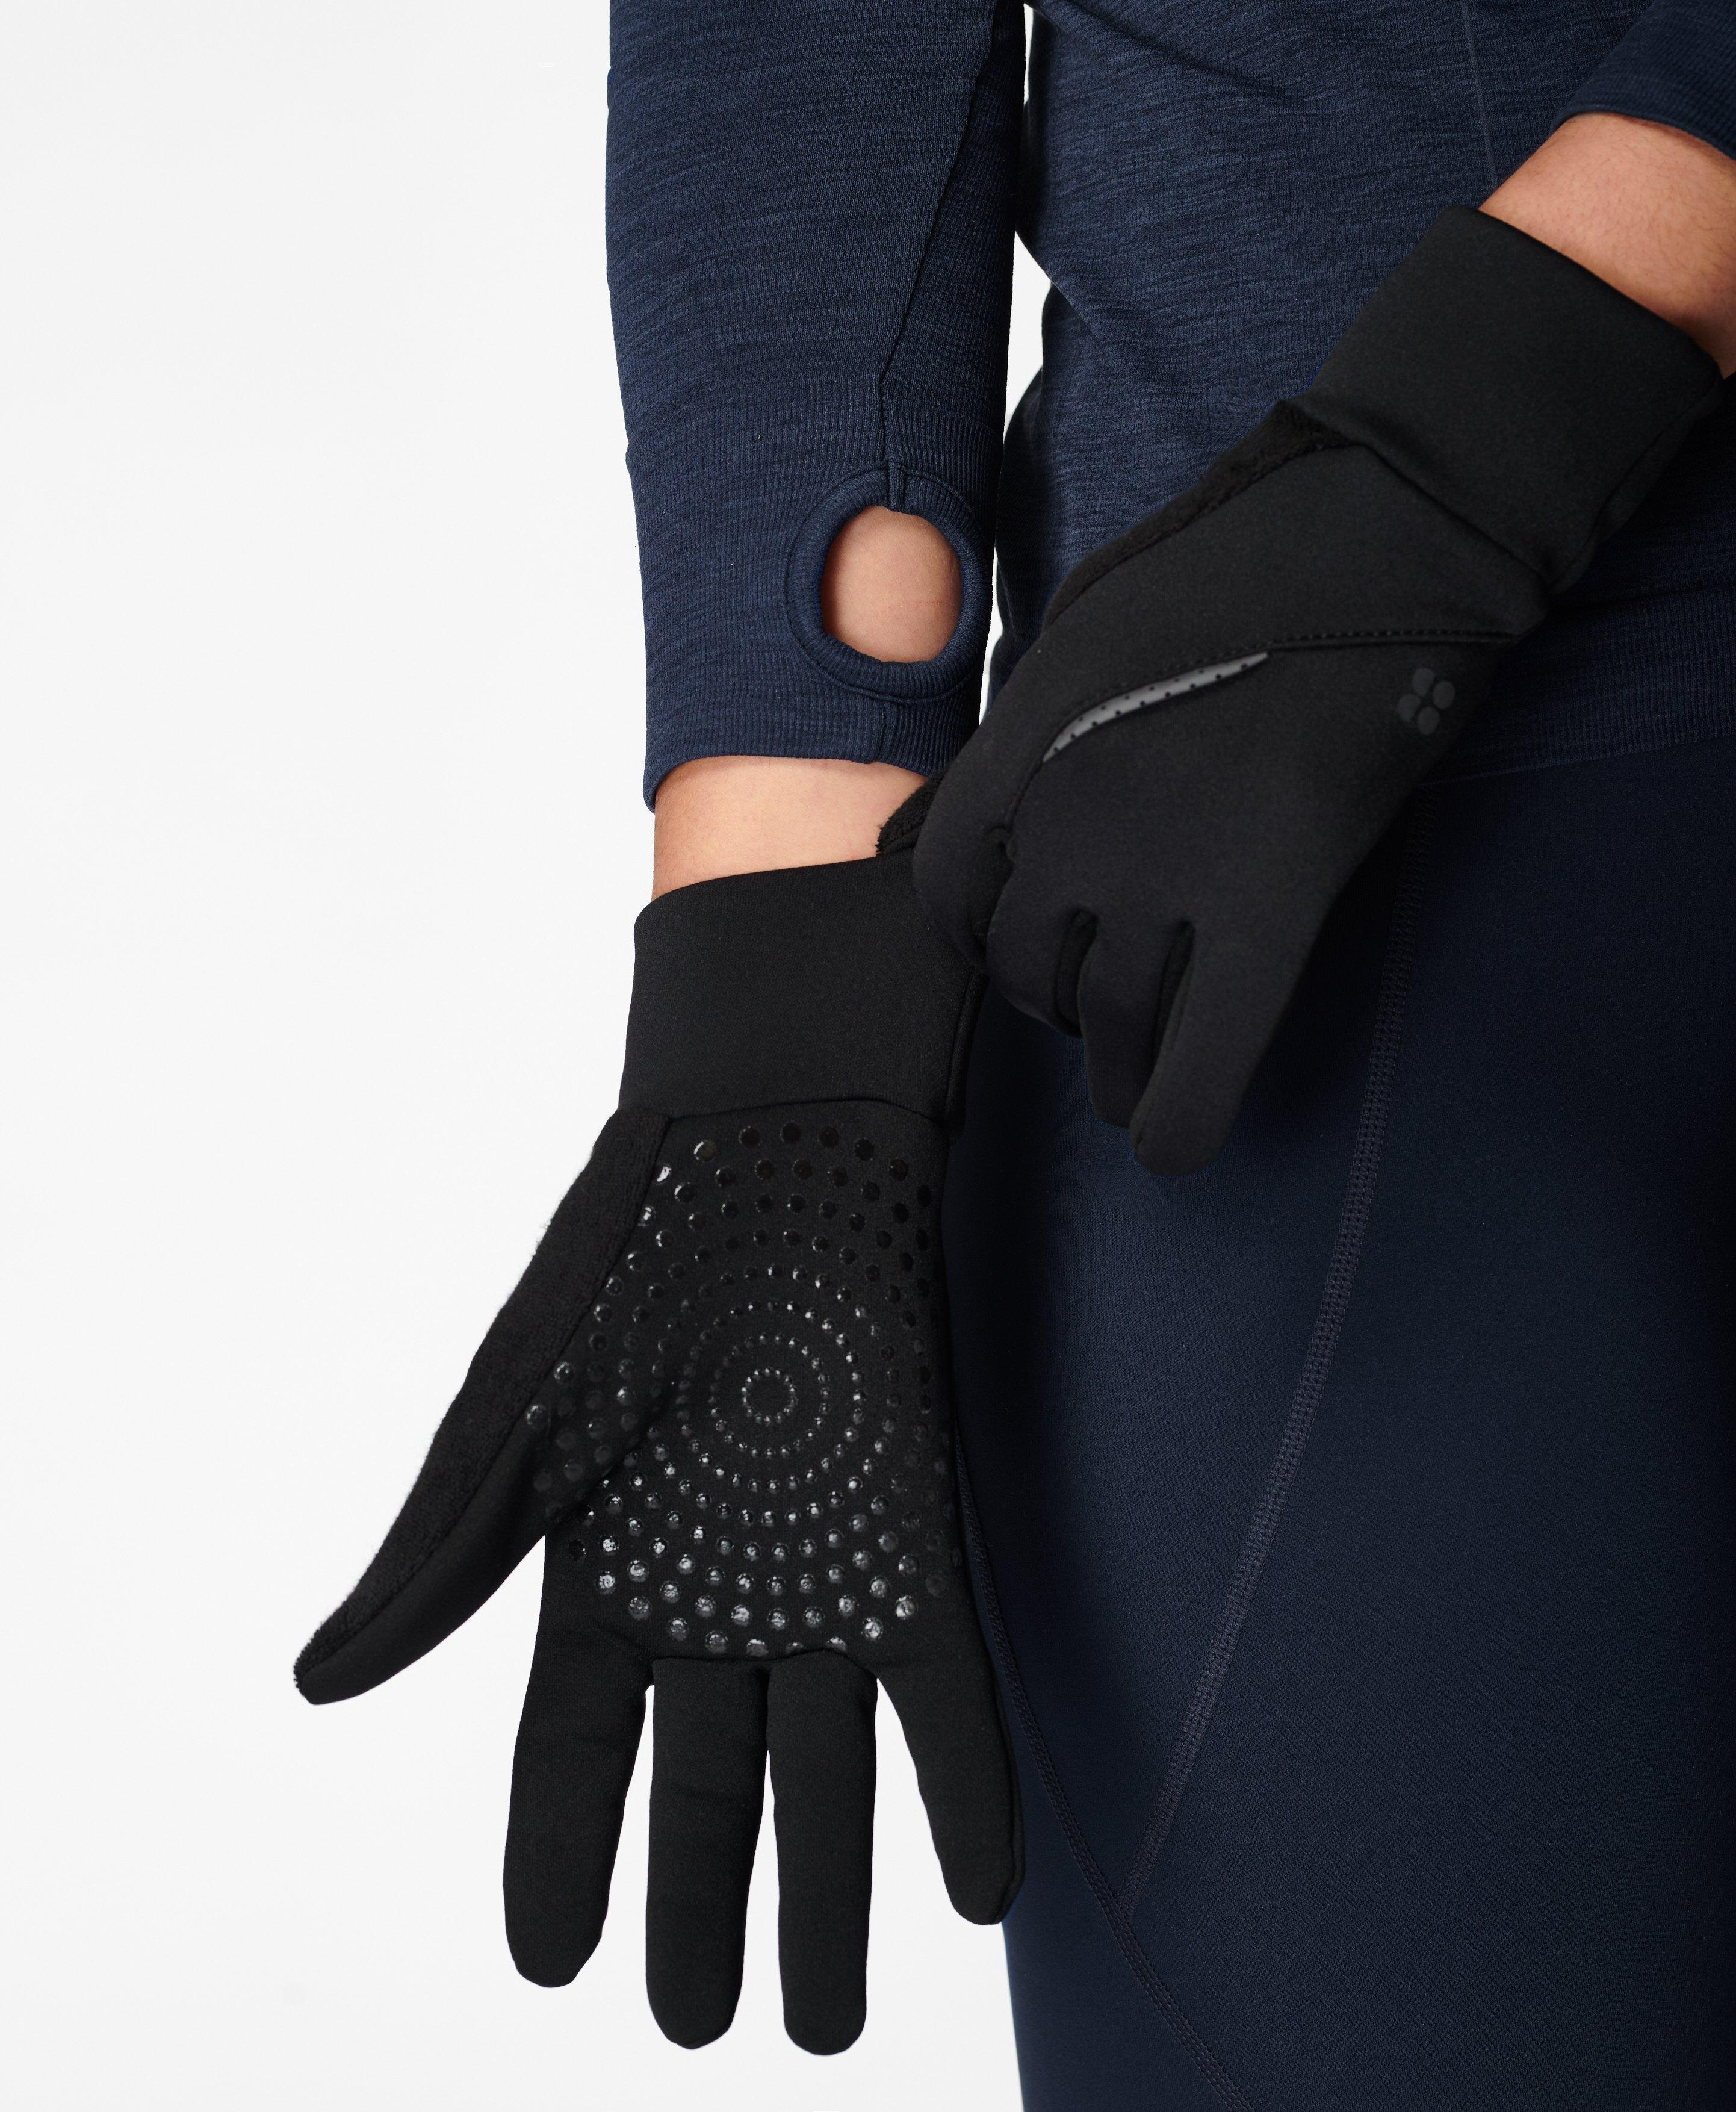 These lightweight, sweat-wicking running gloves come with reflective details for visibility during night-time runs. Touch-screen technology enables use with your phone.